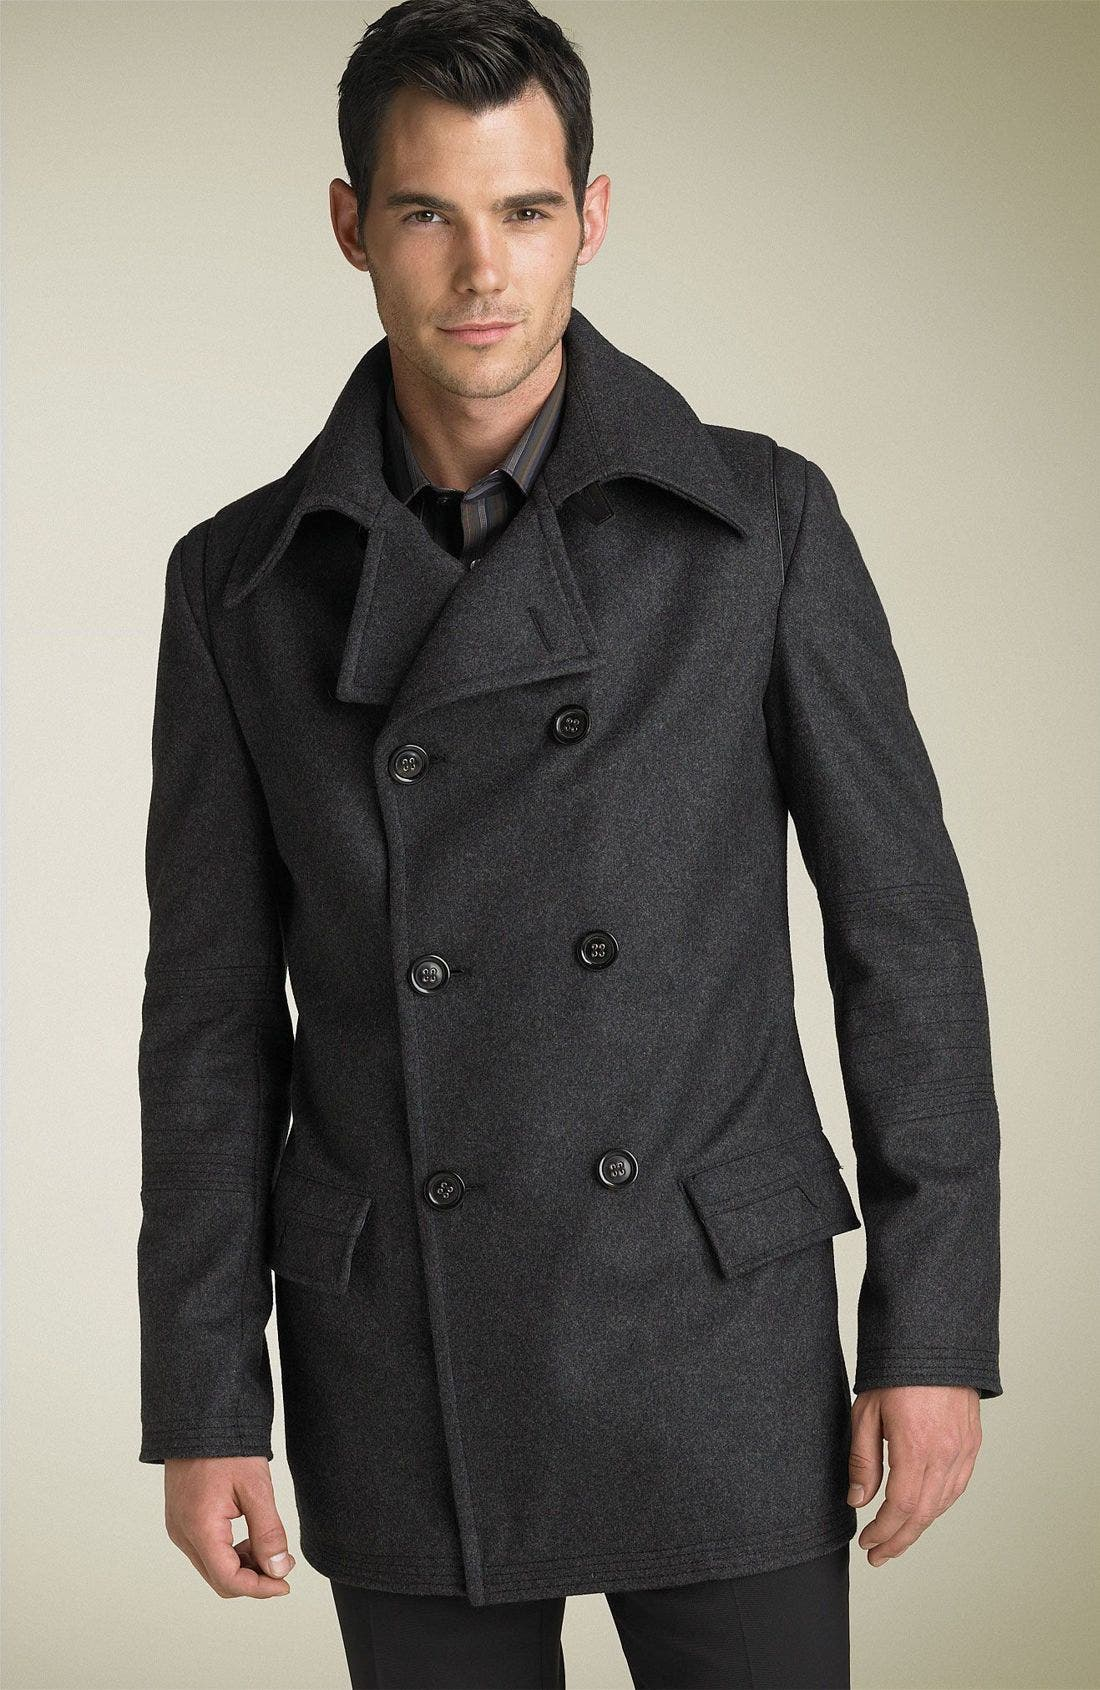 VERSACE,                             Collection Wool Peacoat,                             Main thumbnail 1, color,                             020